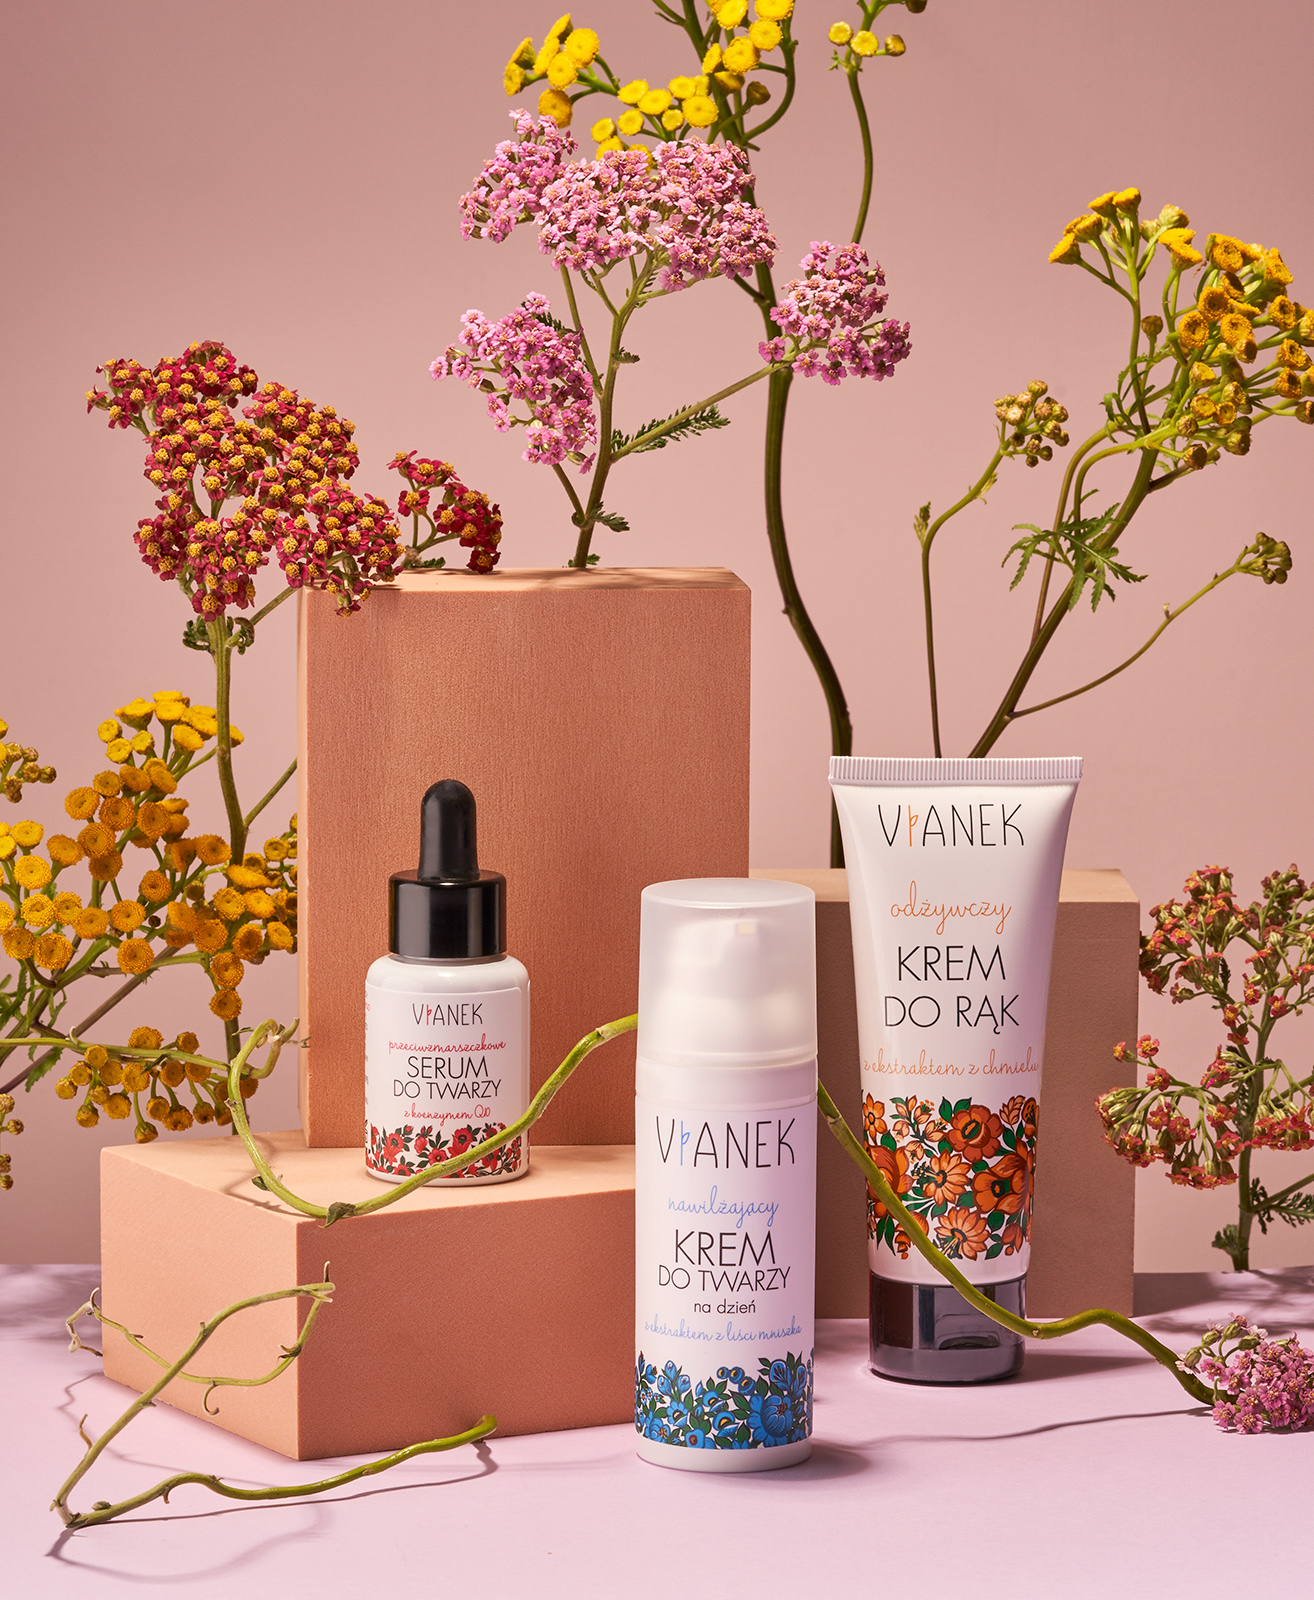 Still life for LABEL Magazine with flowers and Vianek natural cosmetics